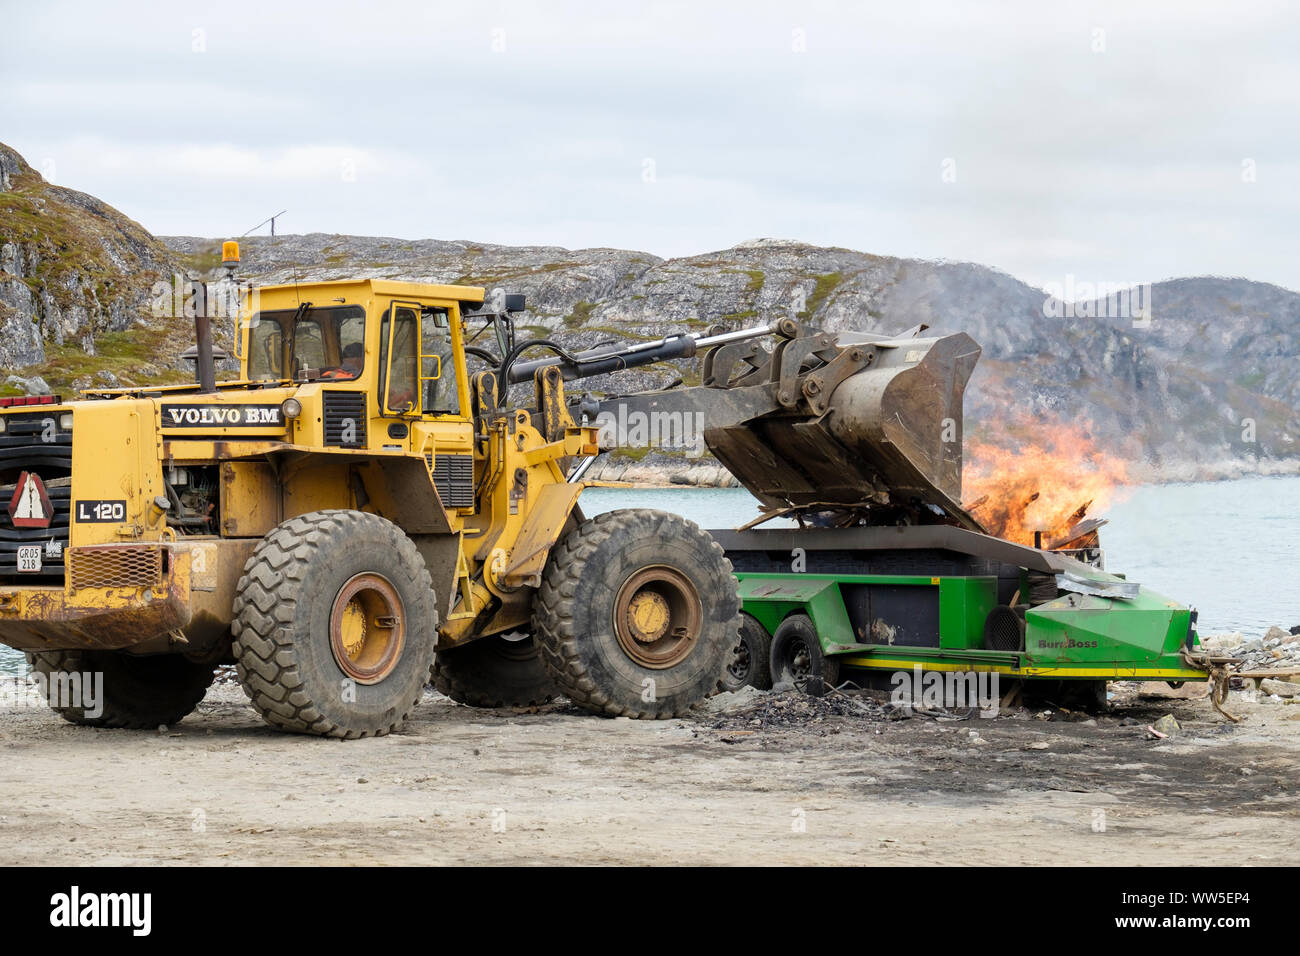 A digger dumping garbage into a BurnBoss burning rubbish at the local tip. Paamiut (Frederikshåb), Sermersooq, Greenland Stock Photo